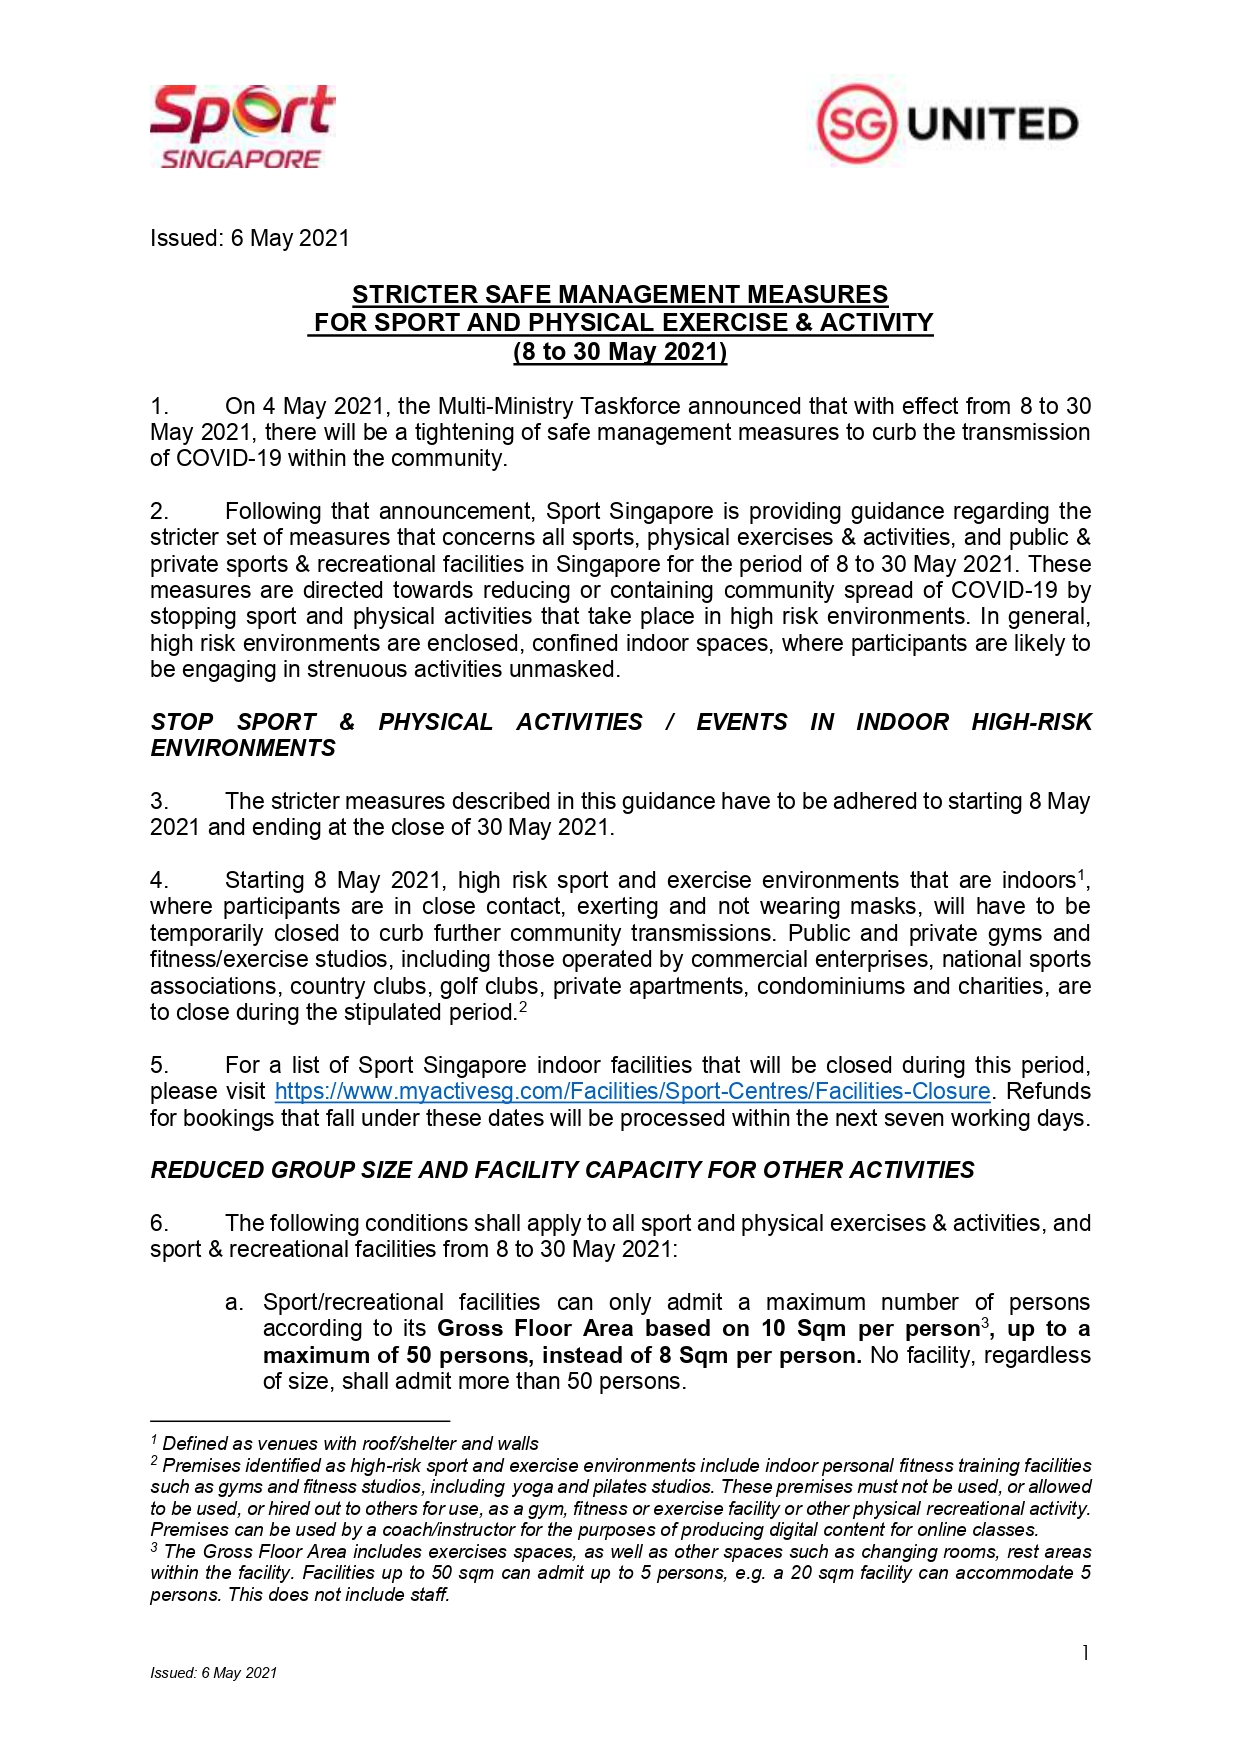 Stricter Safe Management Measures For Sport And Physical Exercise and Activity (8 to 30 May 2021) (2)_pages-to-jpg-0001